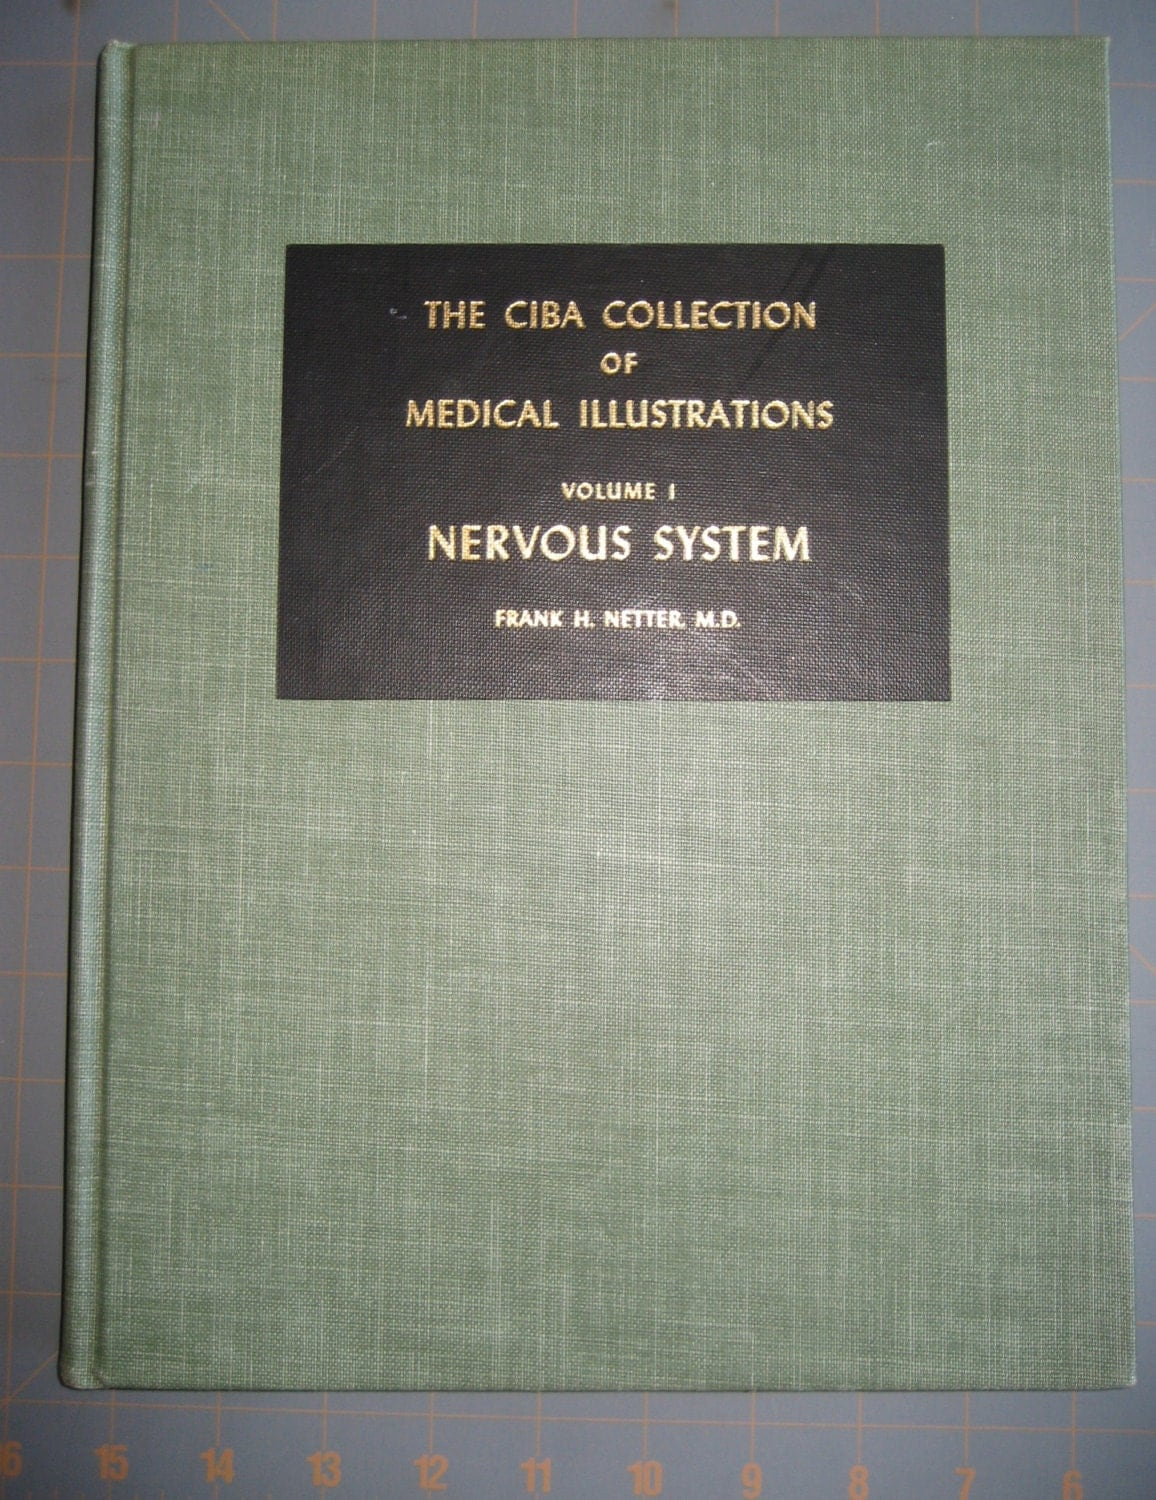 Ciba Collection of Medical Illustrations Volume 4 1965 The Endocrine System